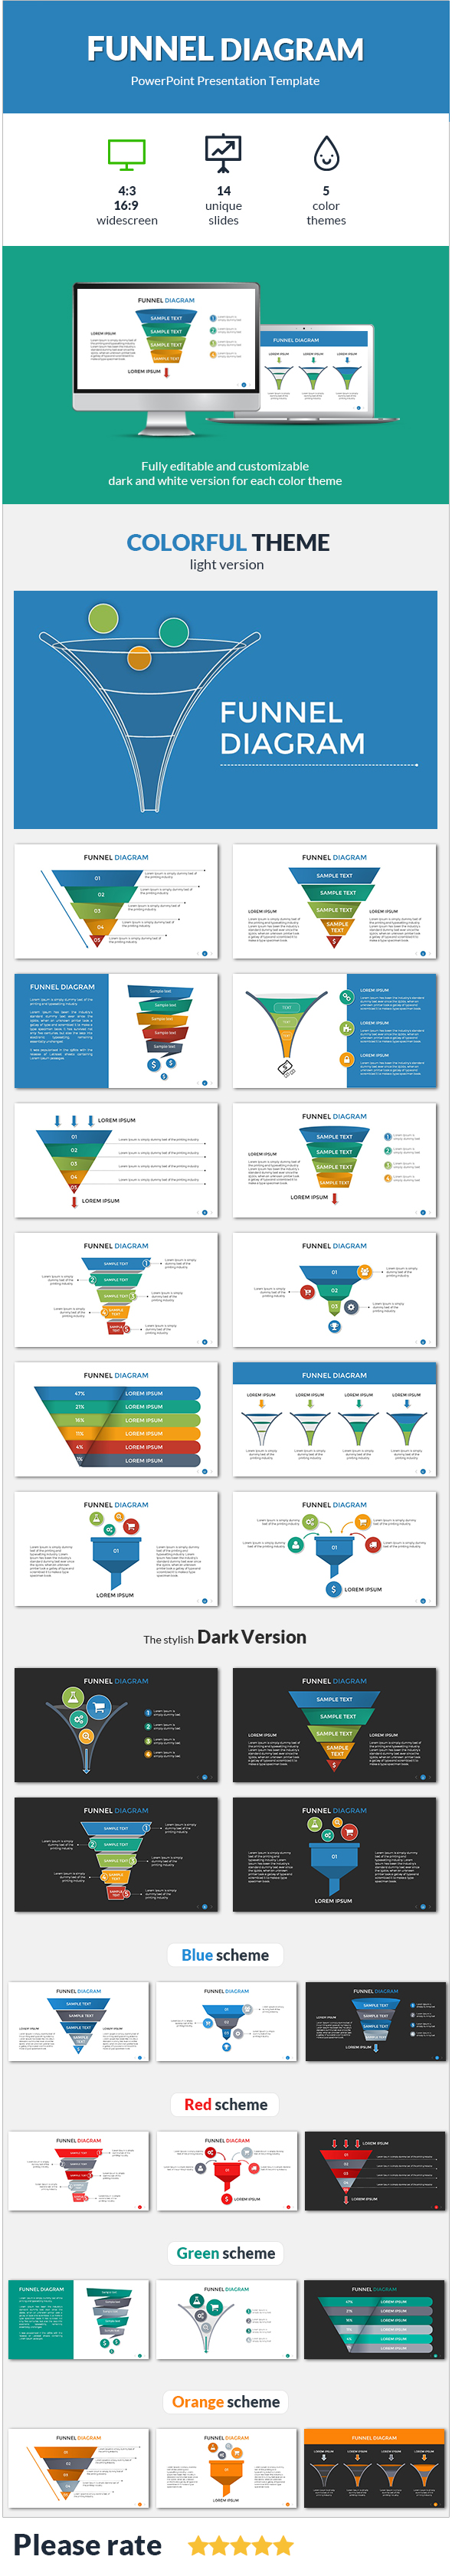 Funnel diagram presentation template by sananik graphicriver funnel diagram presentation template powerpoint templates presentation templates pooptronica Images